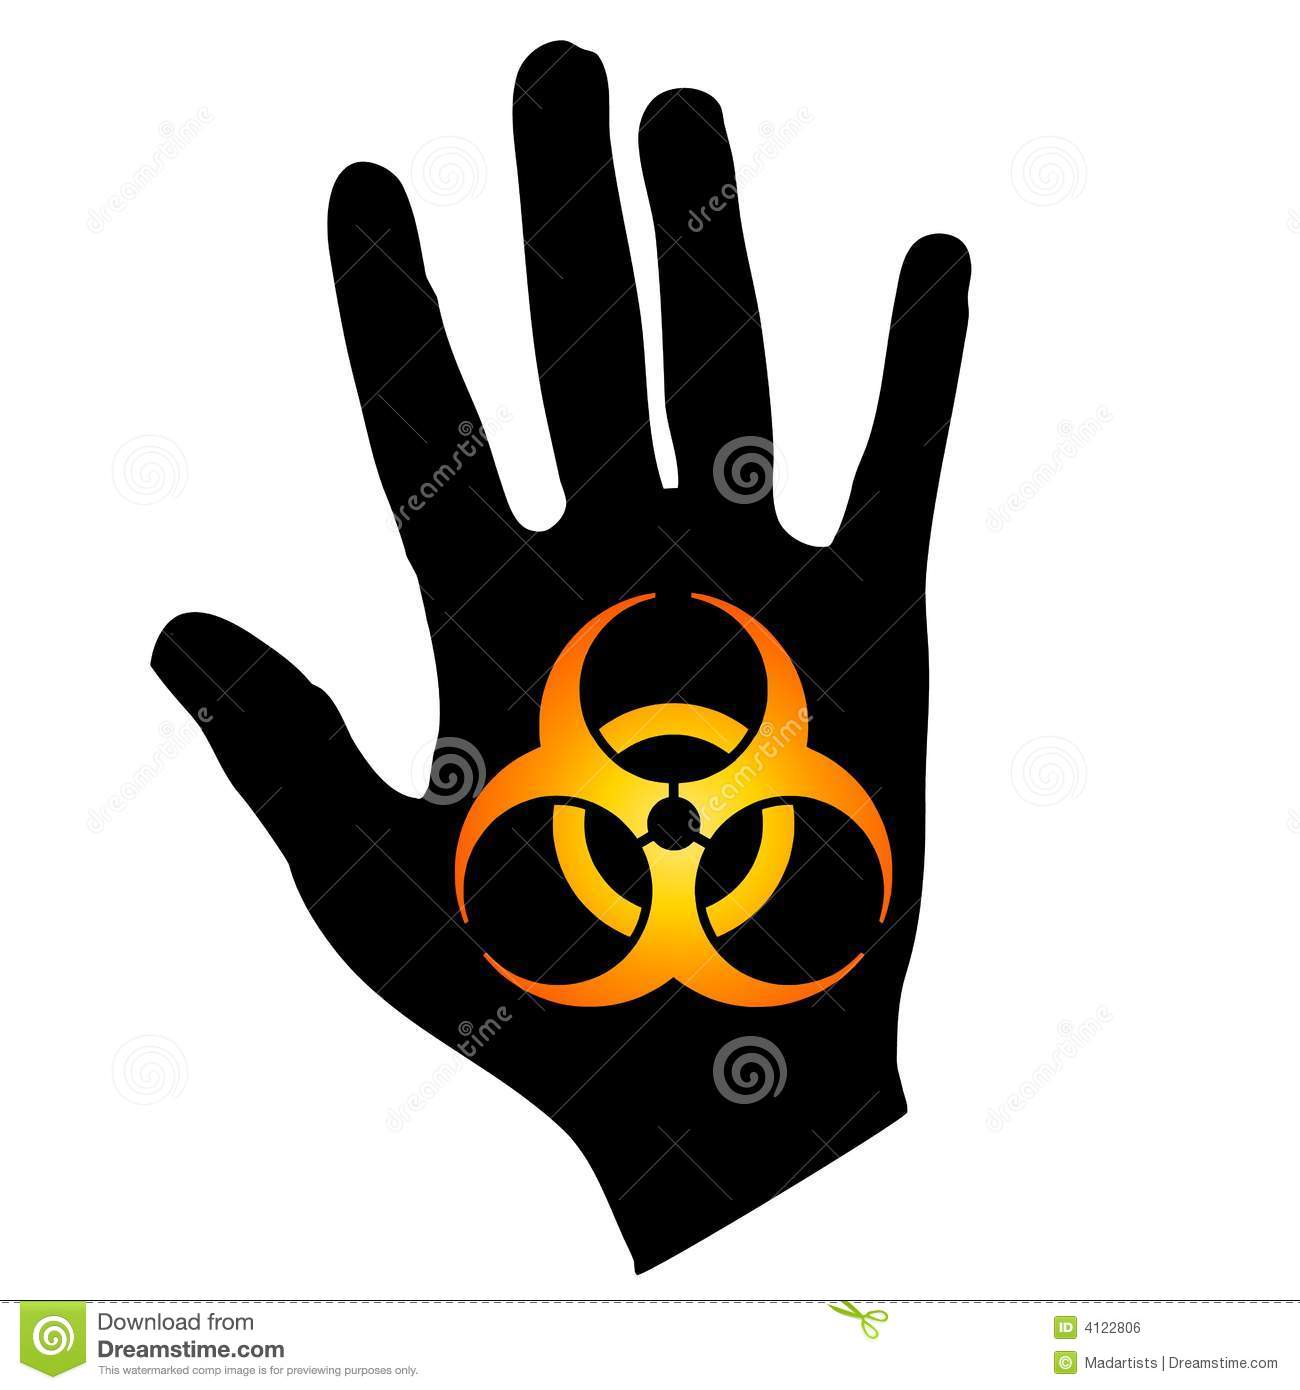 Biohazard symbol on hand gold black stock illustration royalty free stock photo biocorpaavc Image collections